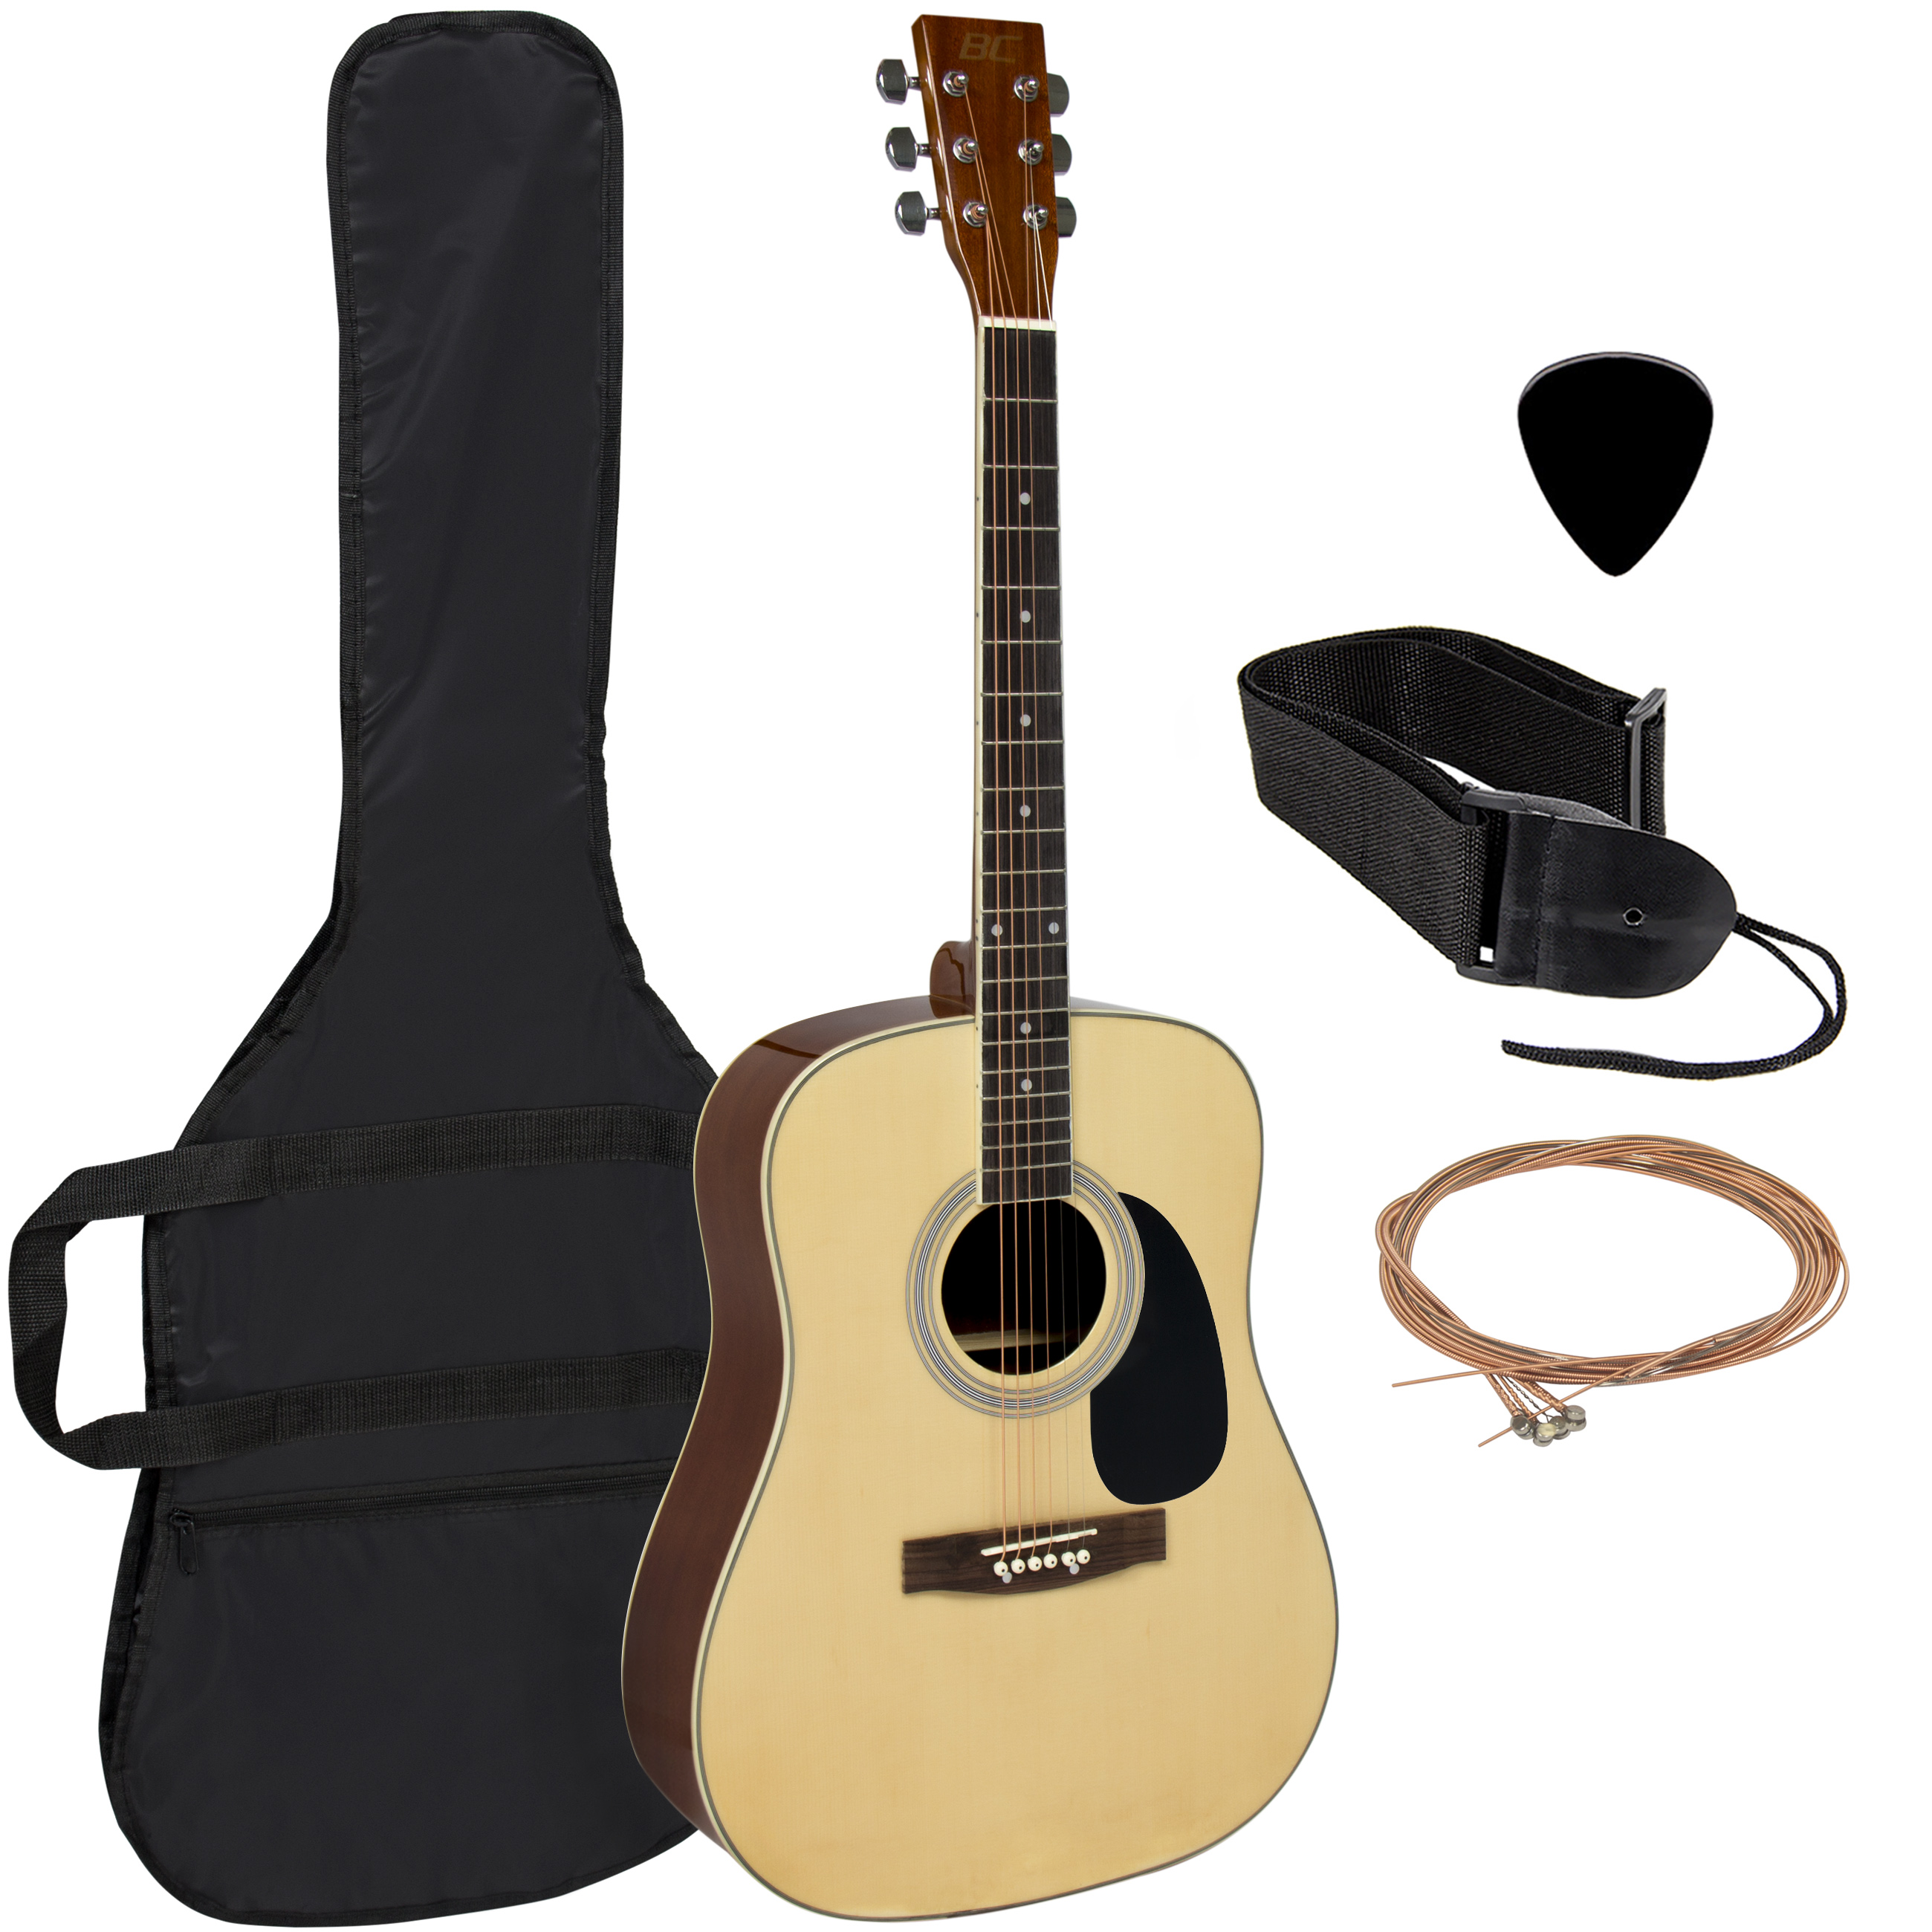 "Acoustic Guitar 41"" Full Size Natural Includes Guitar Case, Strap and More by"